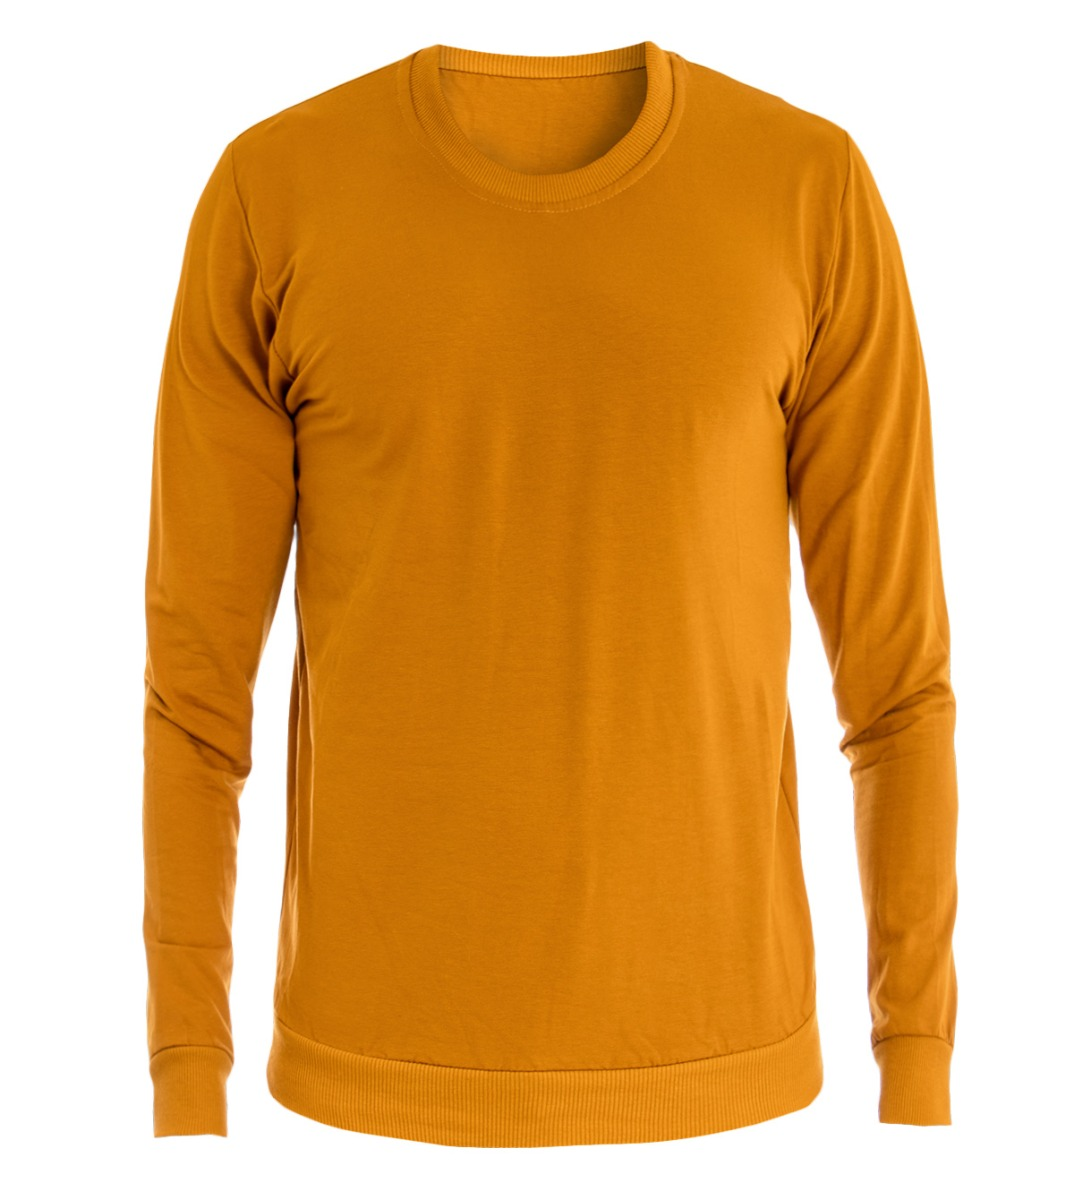 e4734d50f Details about Men's Sweatshirt Crew-neck T-shirt Cotton Light Solid Colour  Mustard Various